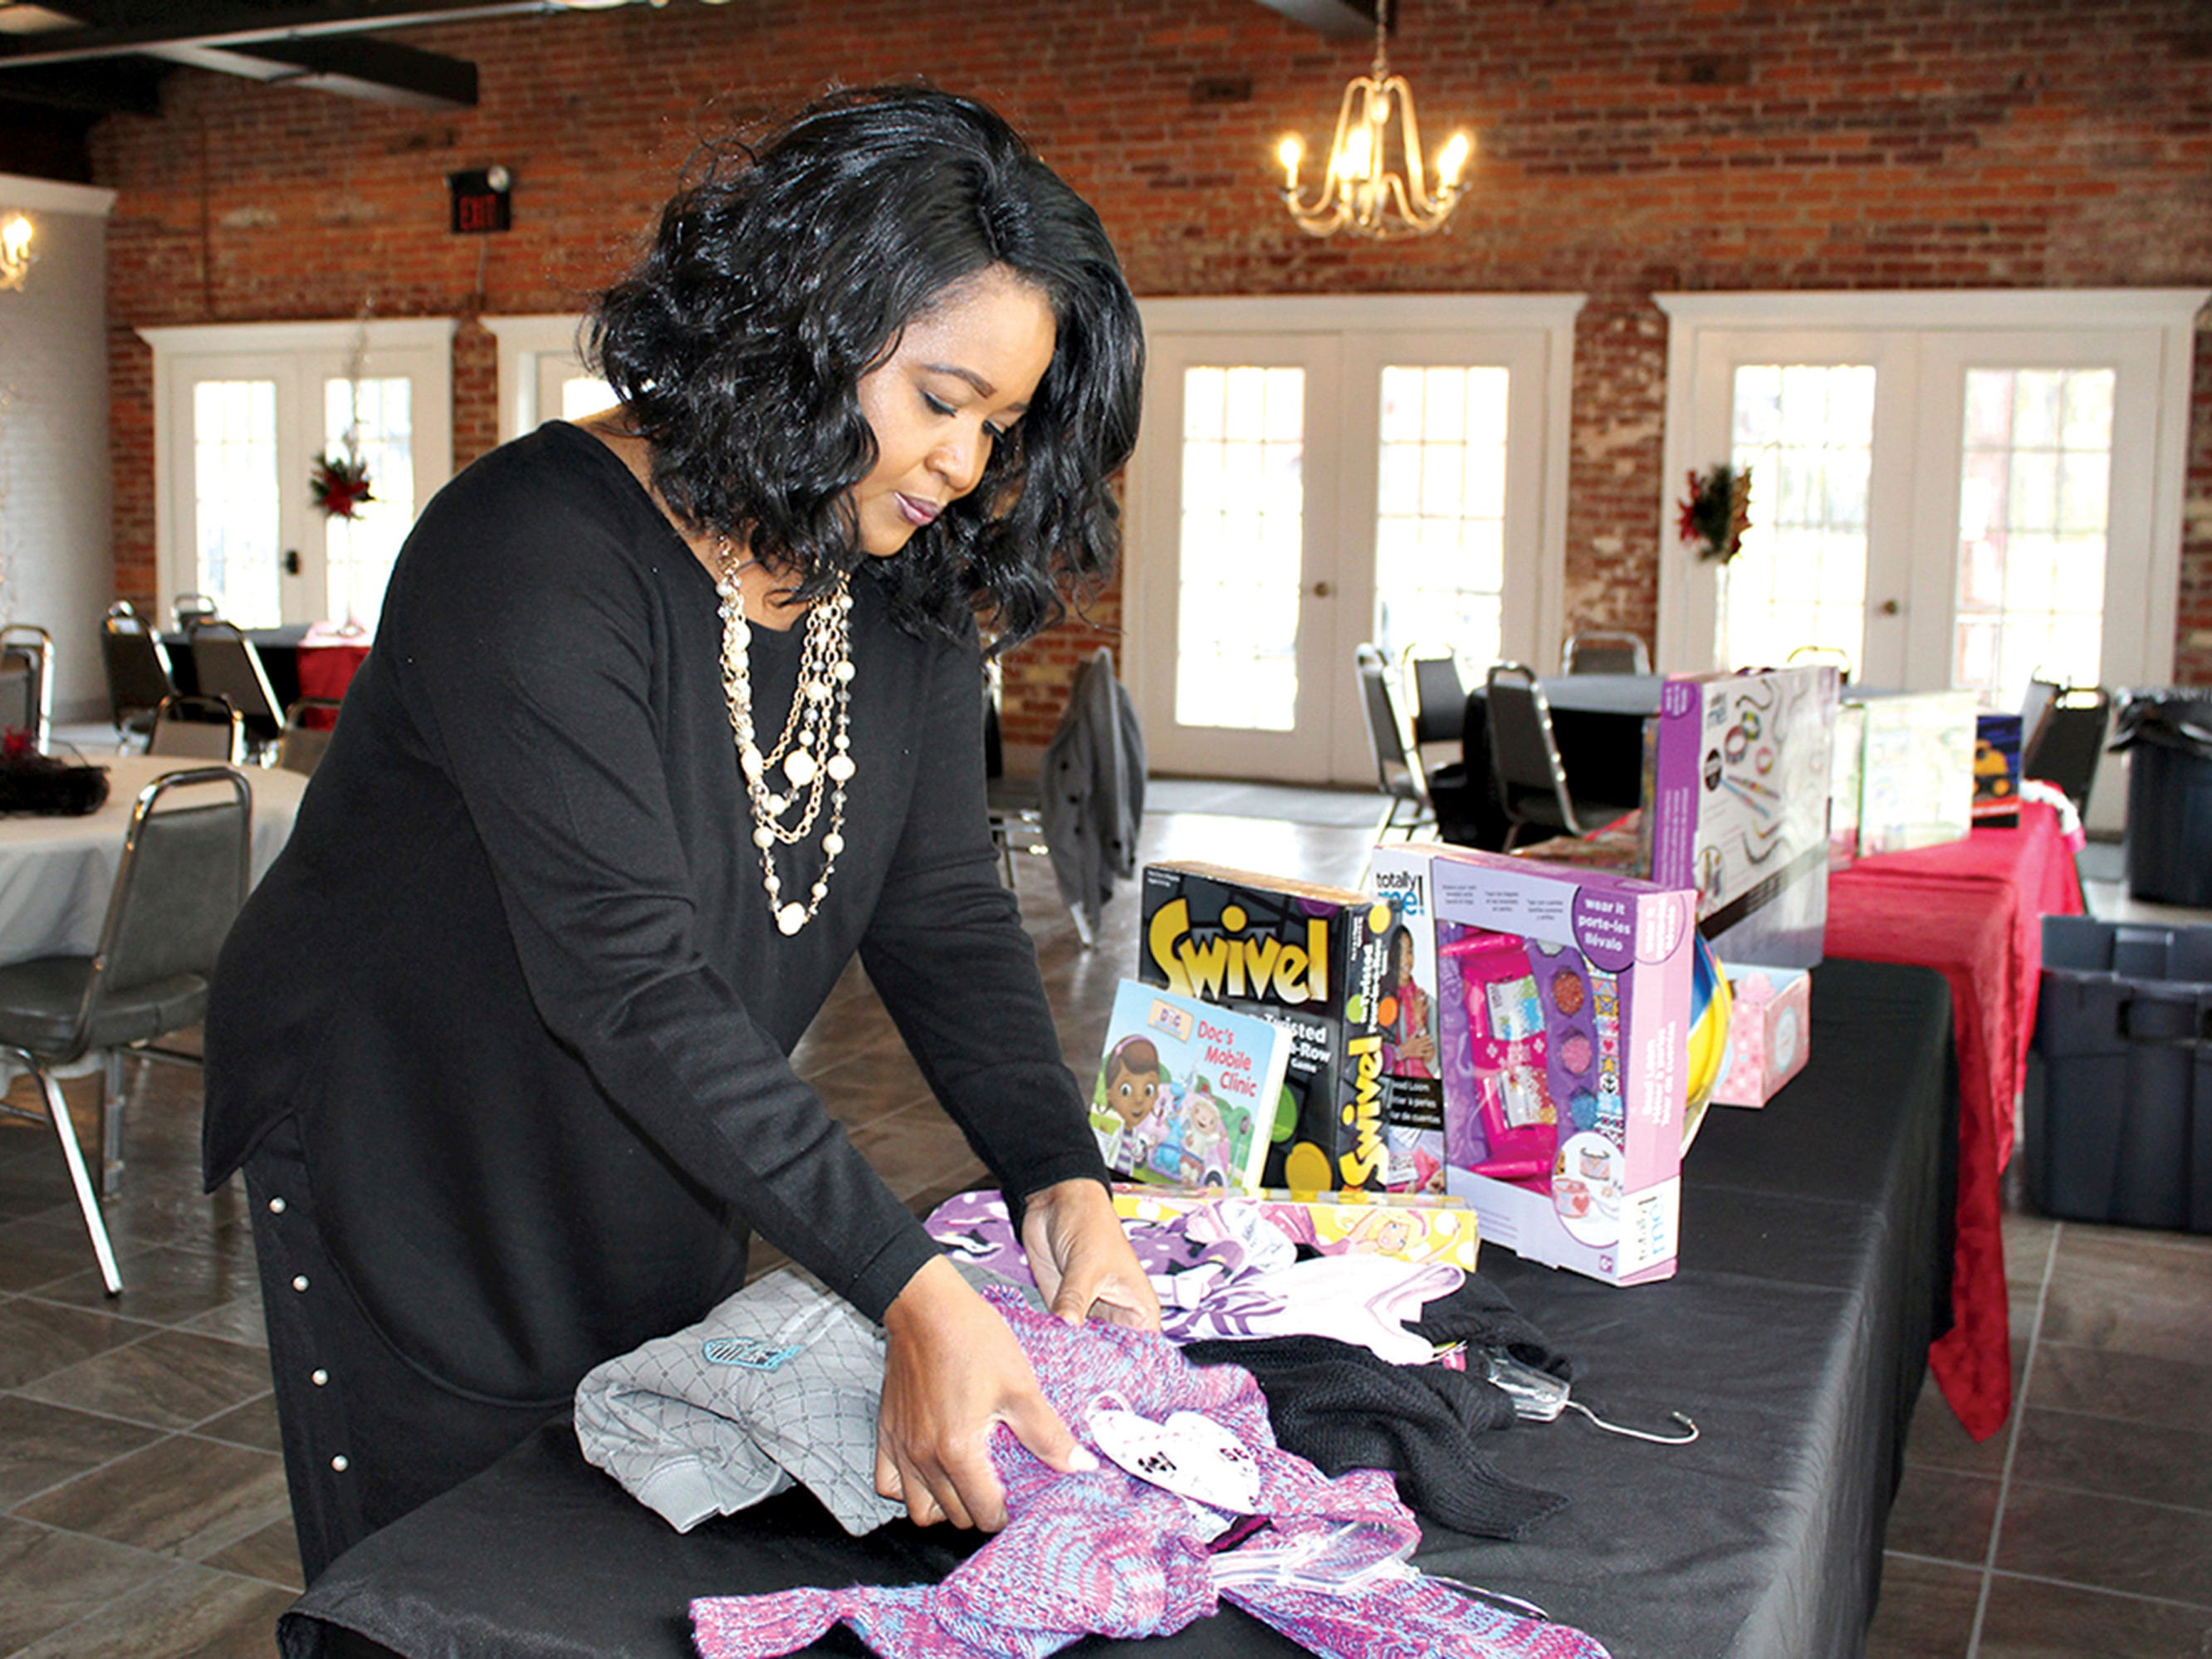 In this Dec. 7, 2018 photo, Glenda Buckhalter, director of community outreach for the city of Columbus, Miss., prepares toys and clothing for children at Regal Hall.